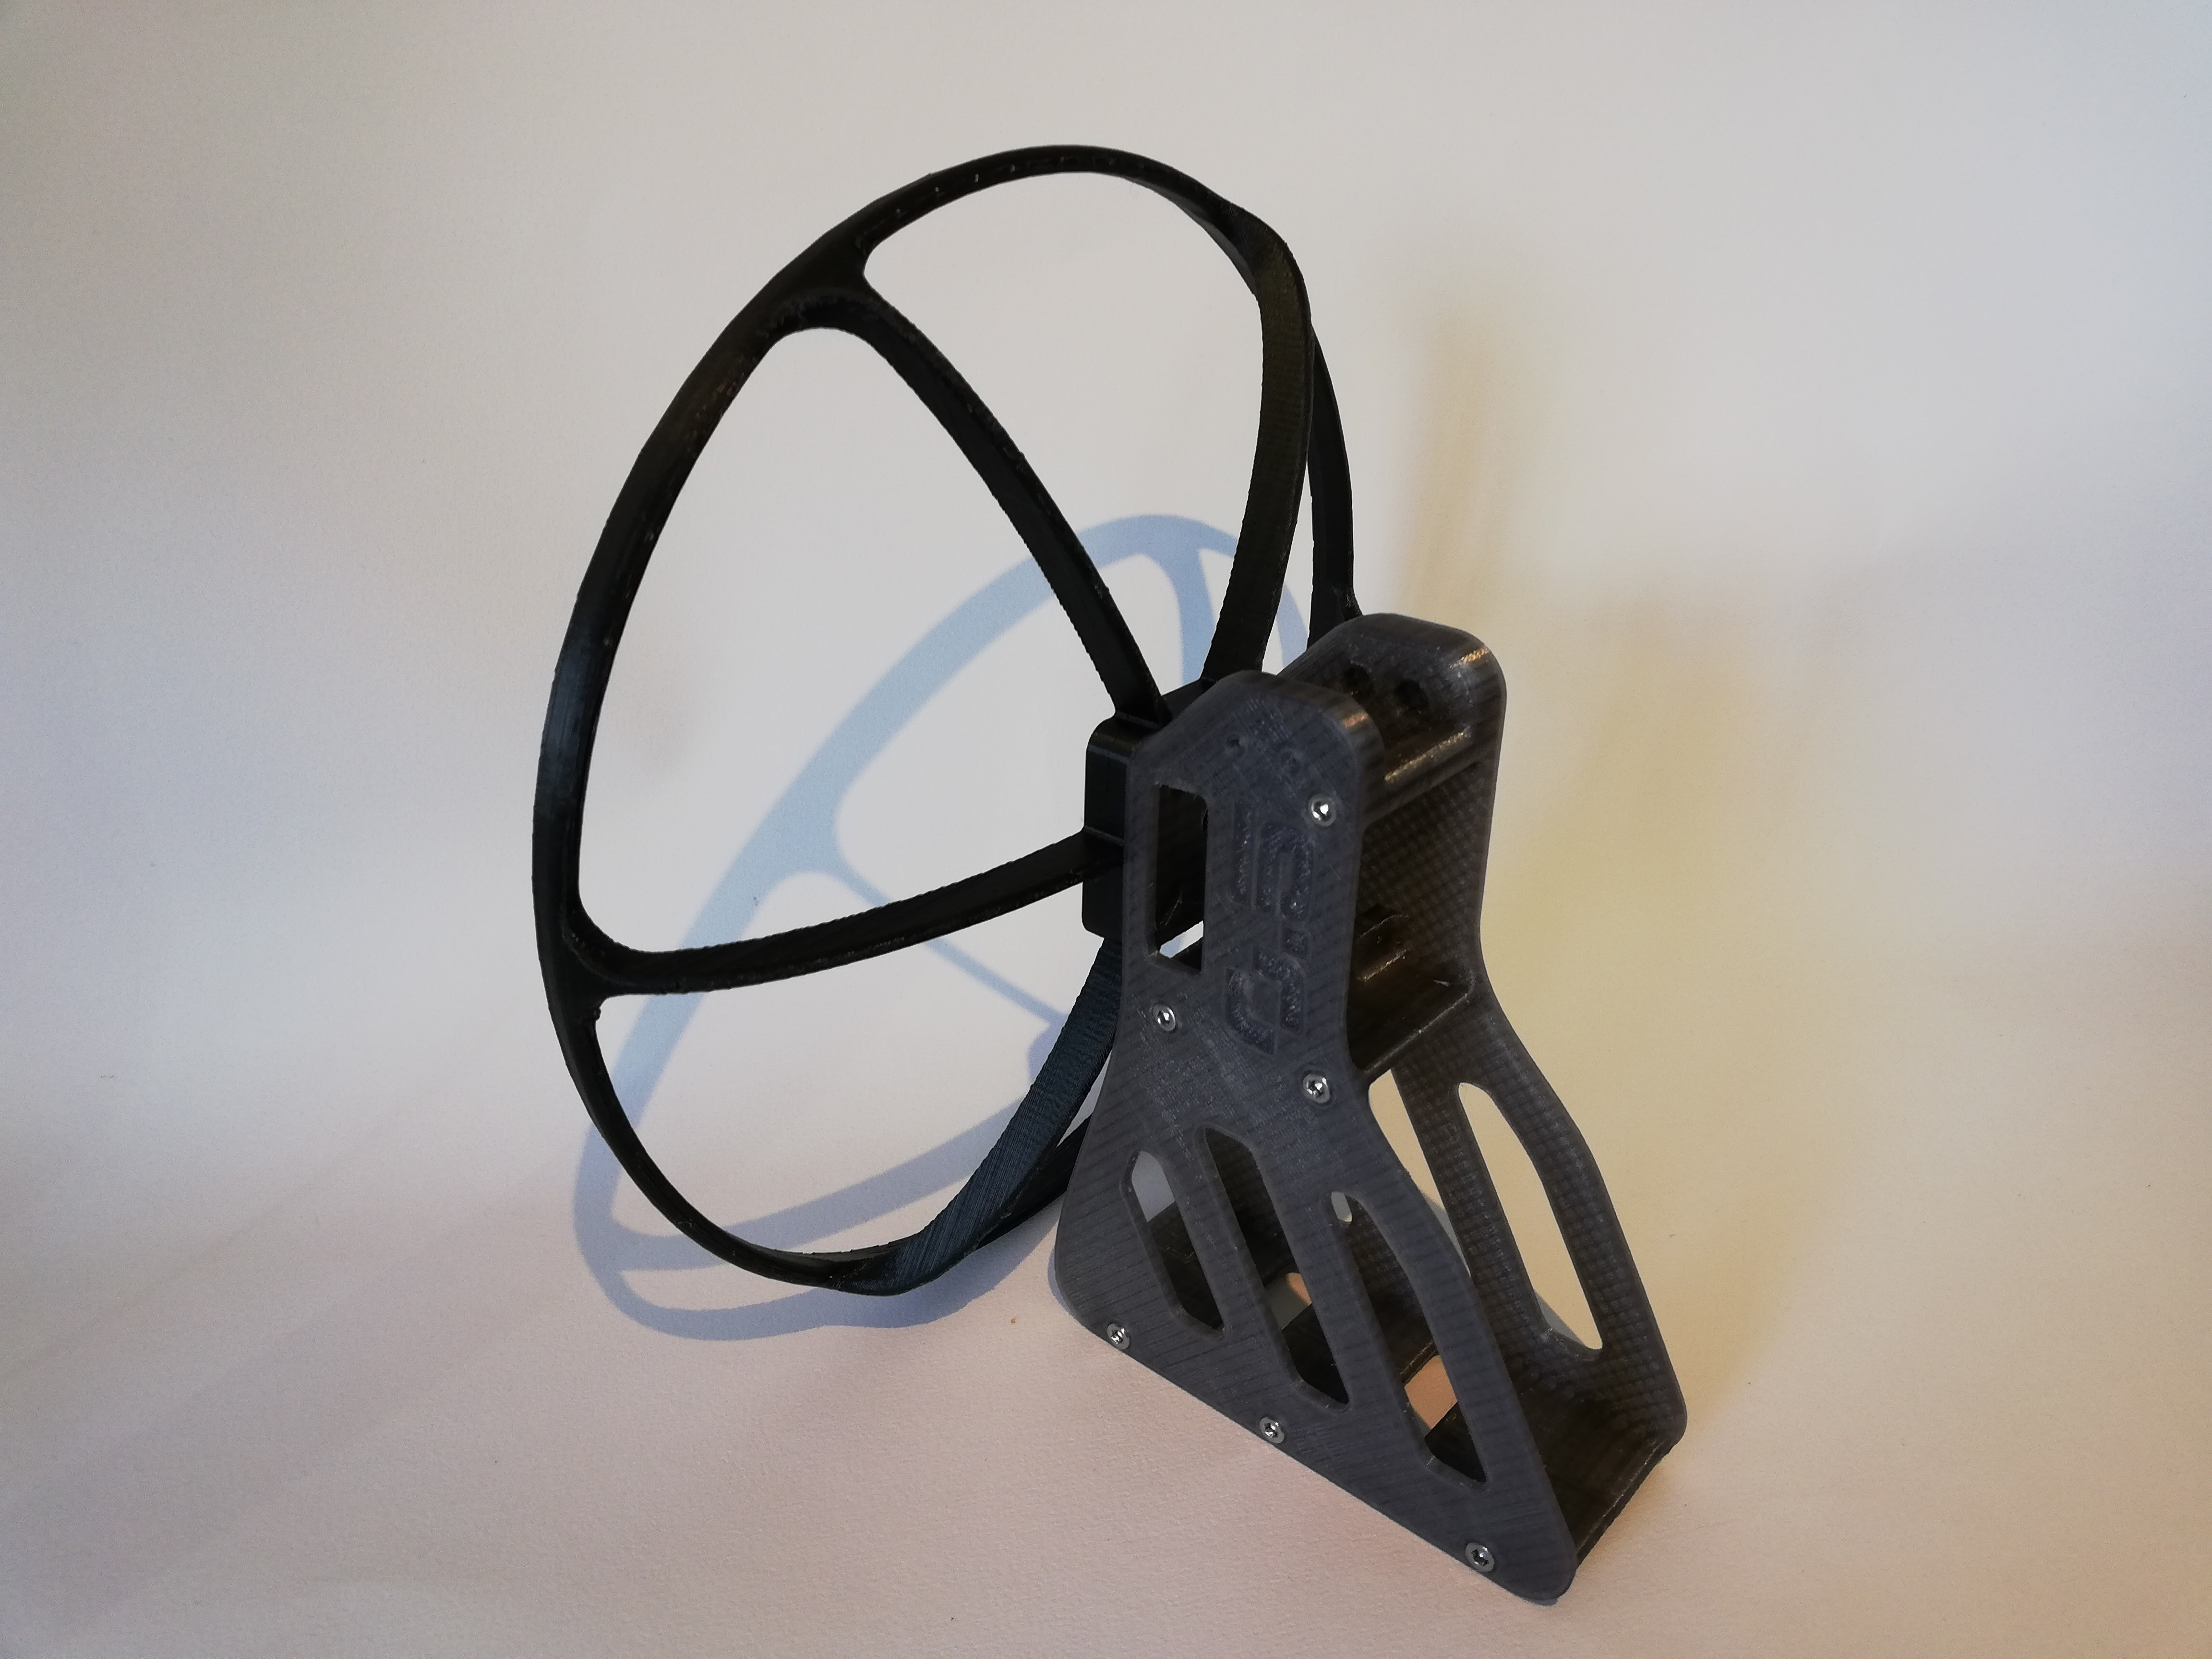 IMG_20180917_094314.jpg Download STL file RC OXY 0.5 Paramotor Boat • Object to 3D print, robotprint3d